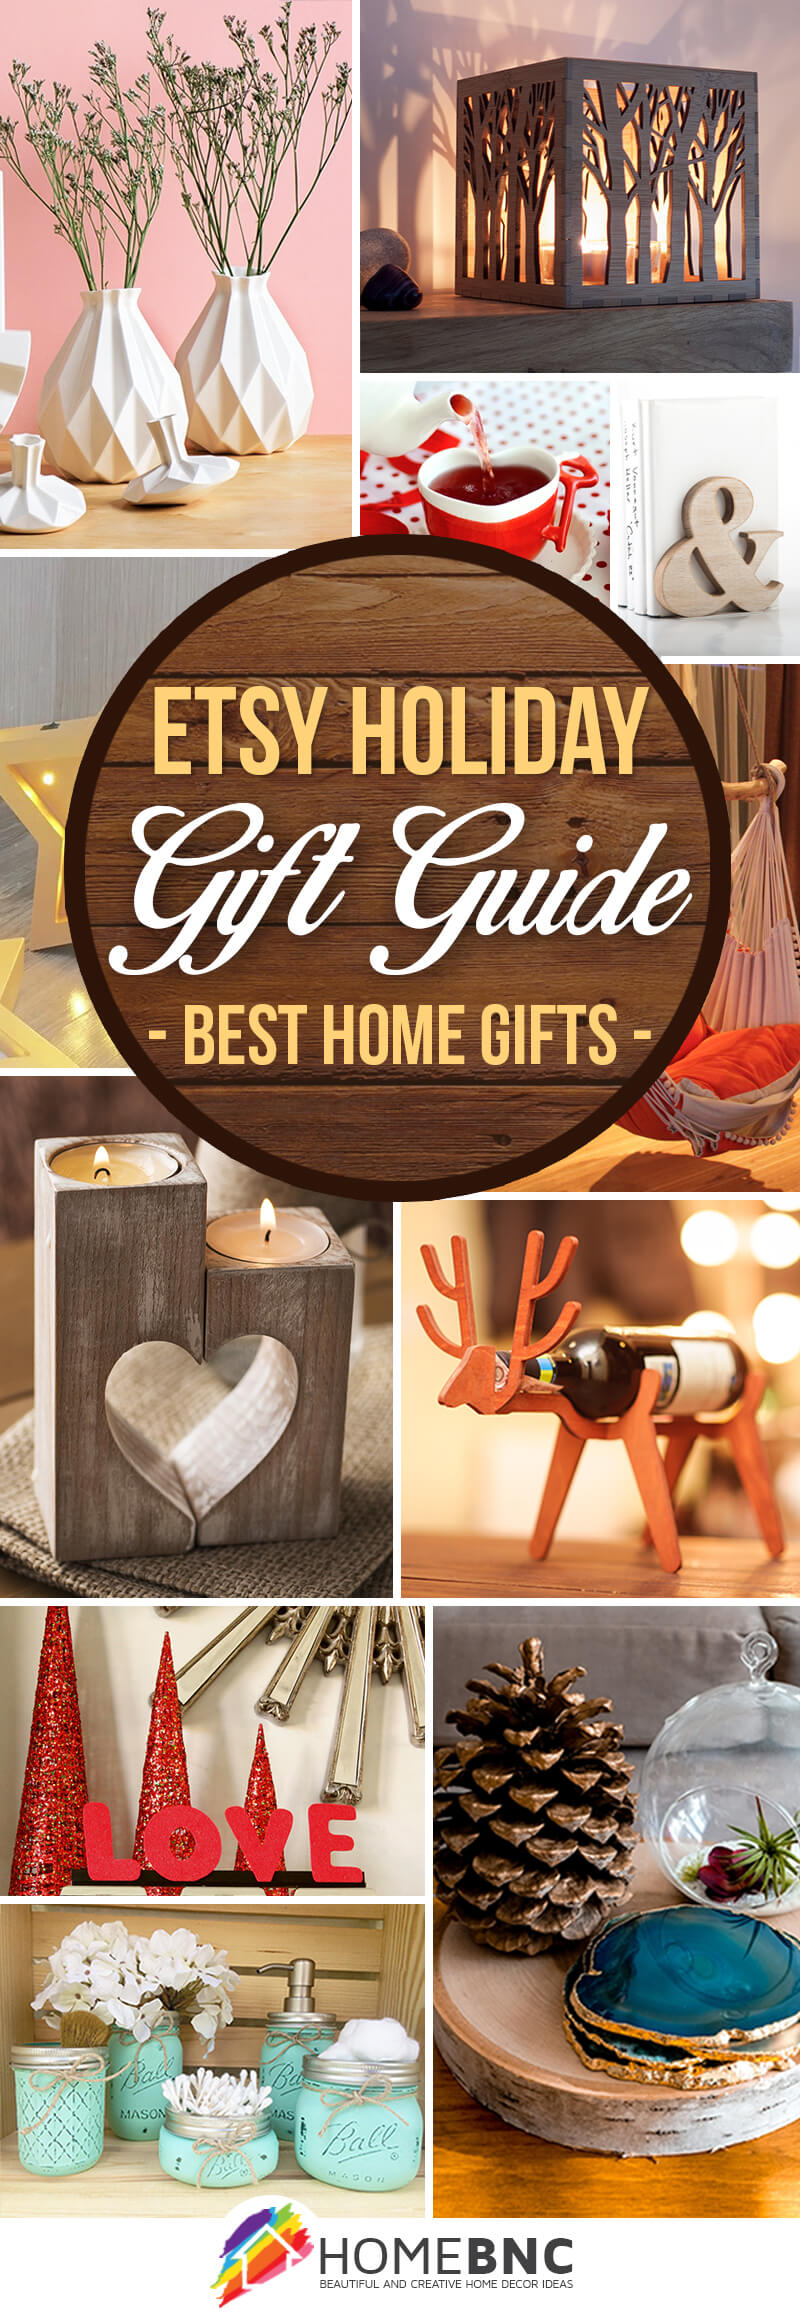 Etsy Holiday Gift Guide: Best Home Christmas Gifts for Everyone in 2018